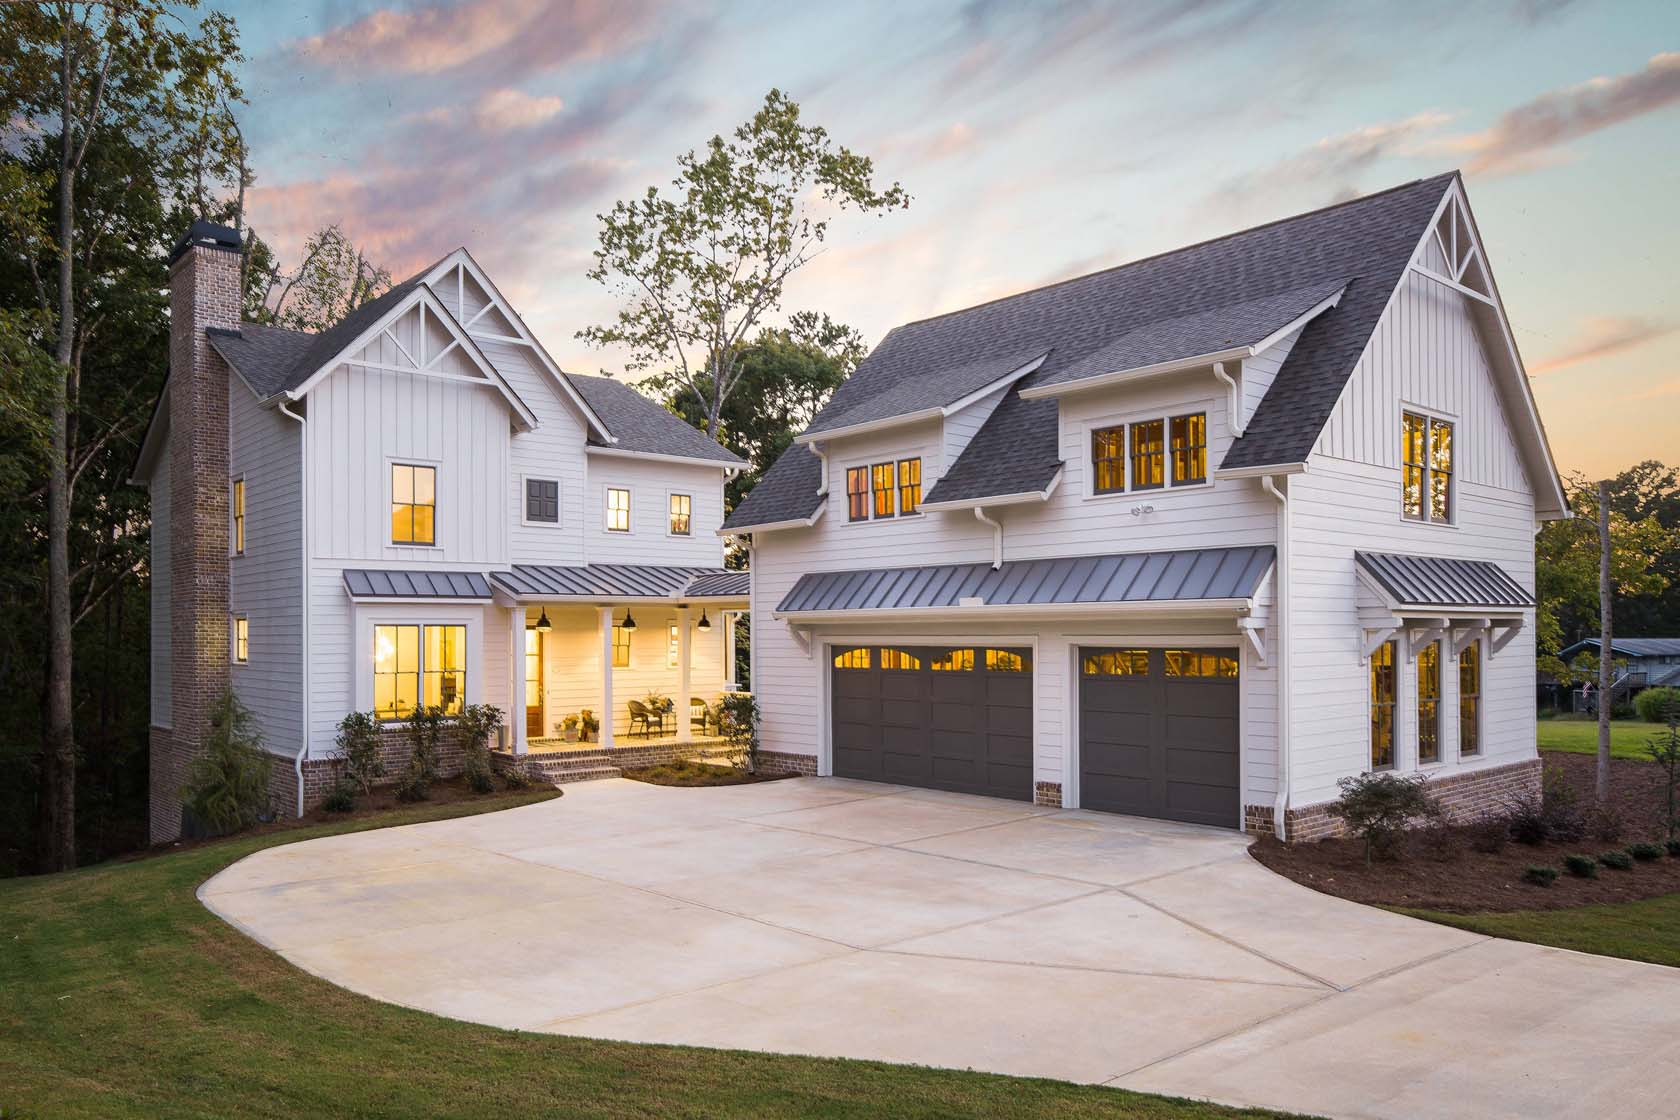 6 tips to improve the curb appeal of your   property